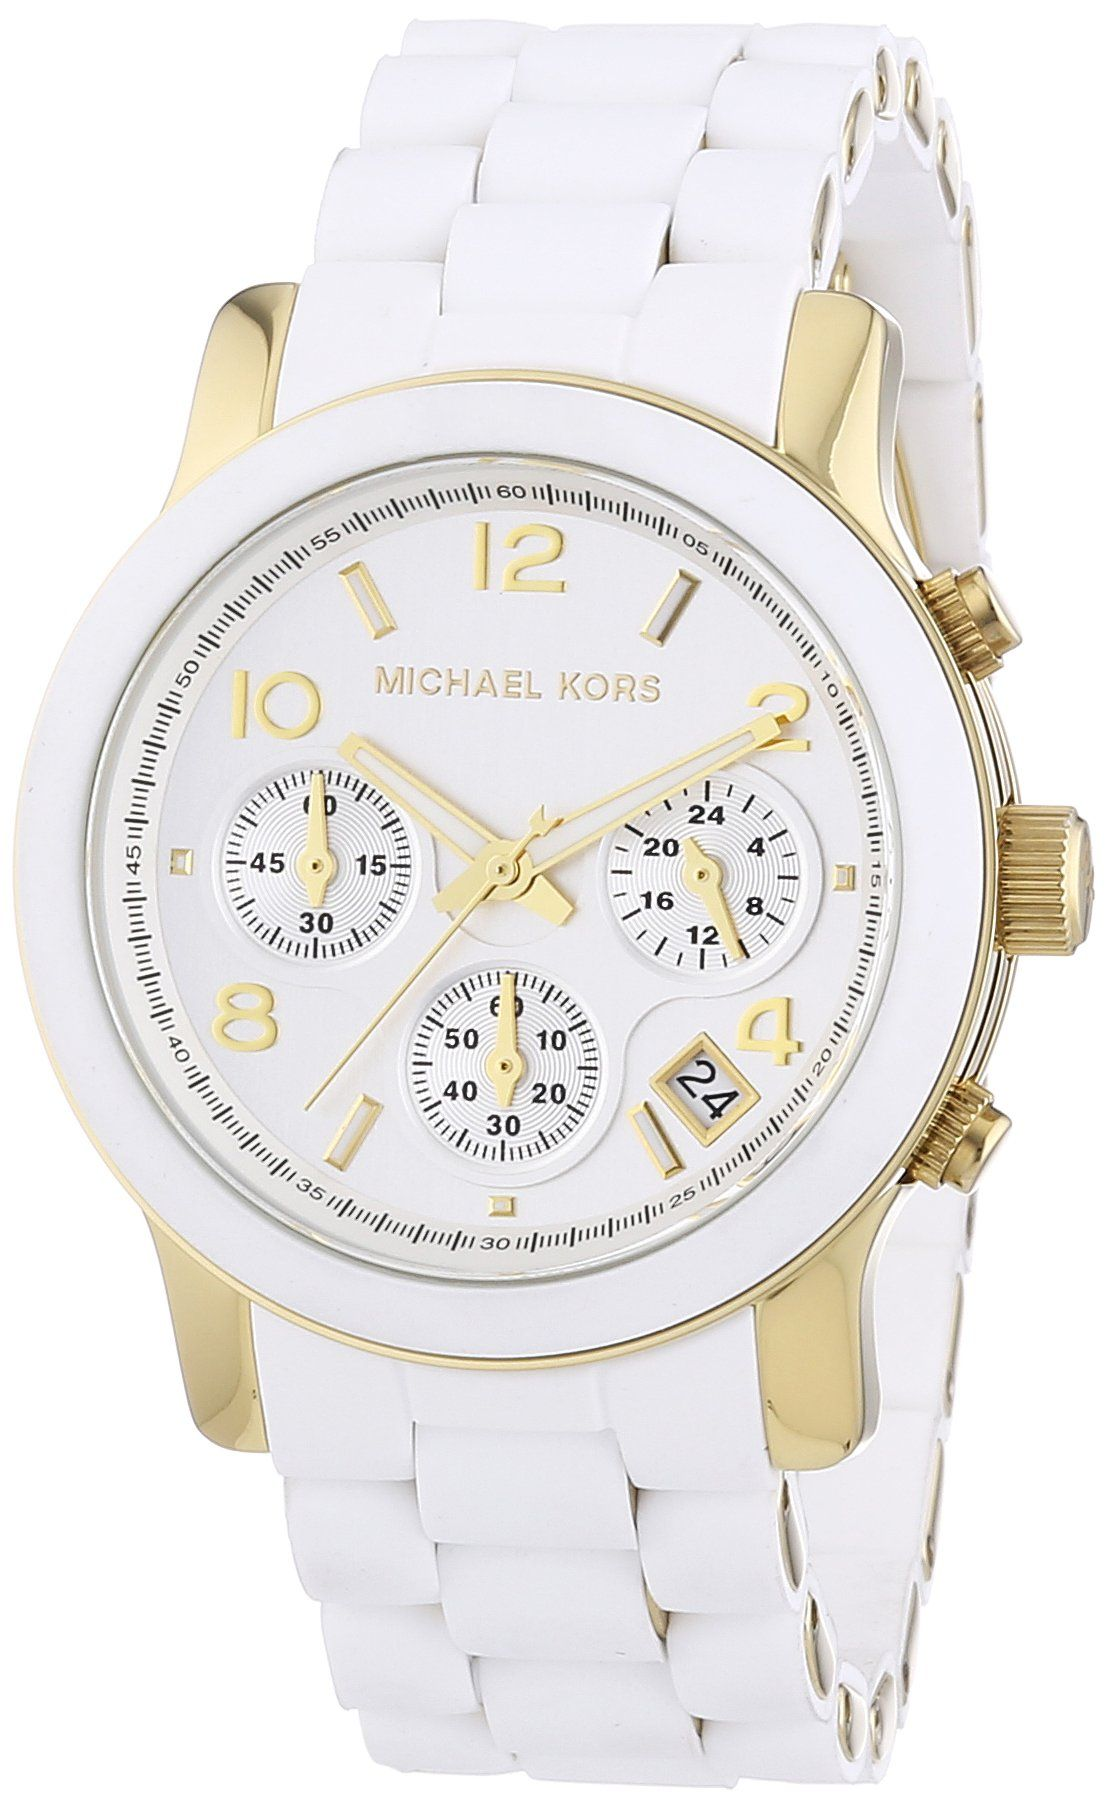 161 Michael Kors Mk5145 Women S Two Tone Stainless Steel Quartz Chronograph White Dial Watch Michael Kors Michael Kors Watch White Dial Watch